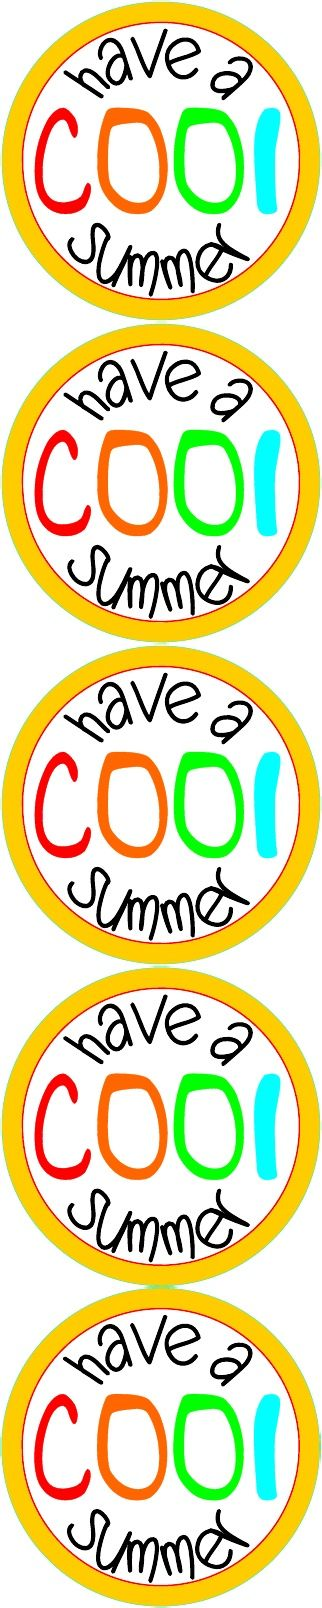 Striking image with have a cool summer printable